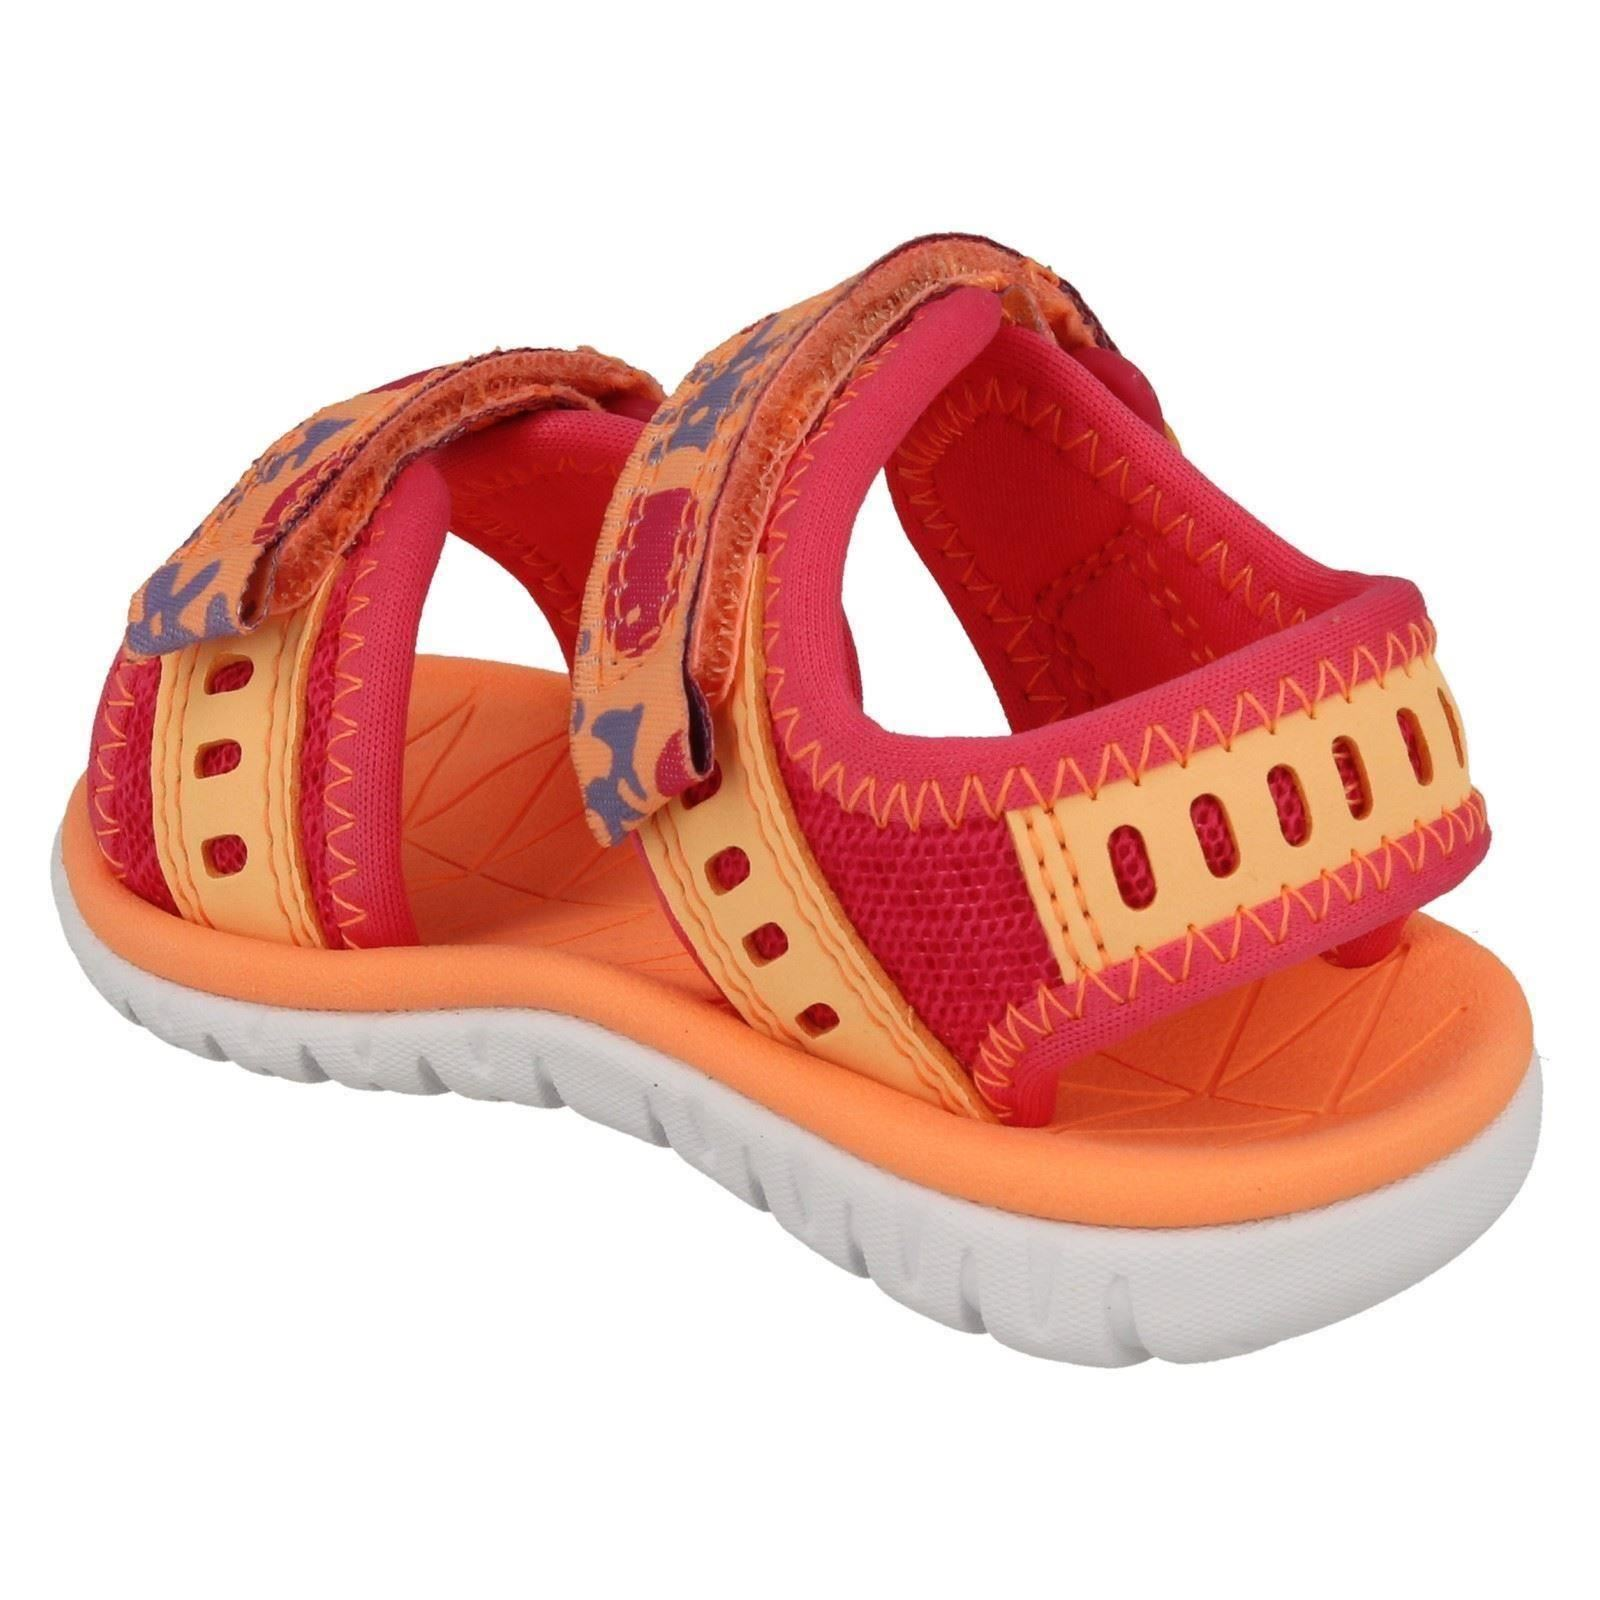 Girls Clarks Casual Strapped Sandals Surfing Moon